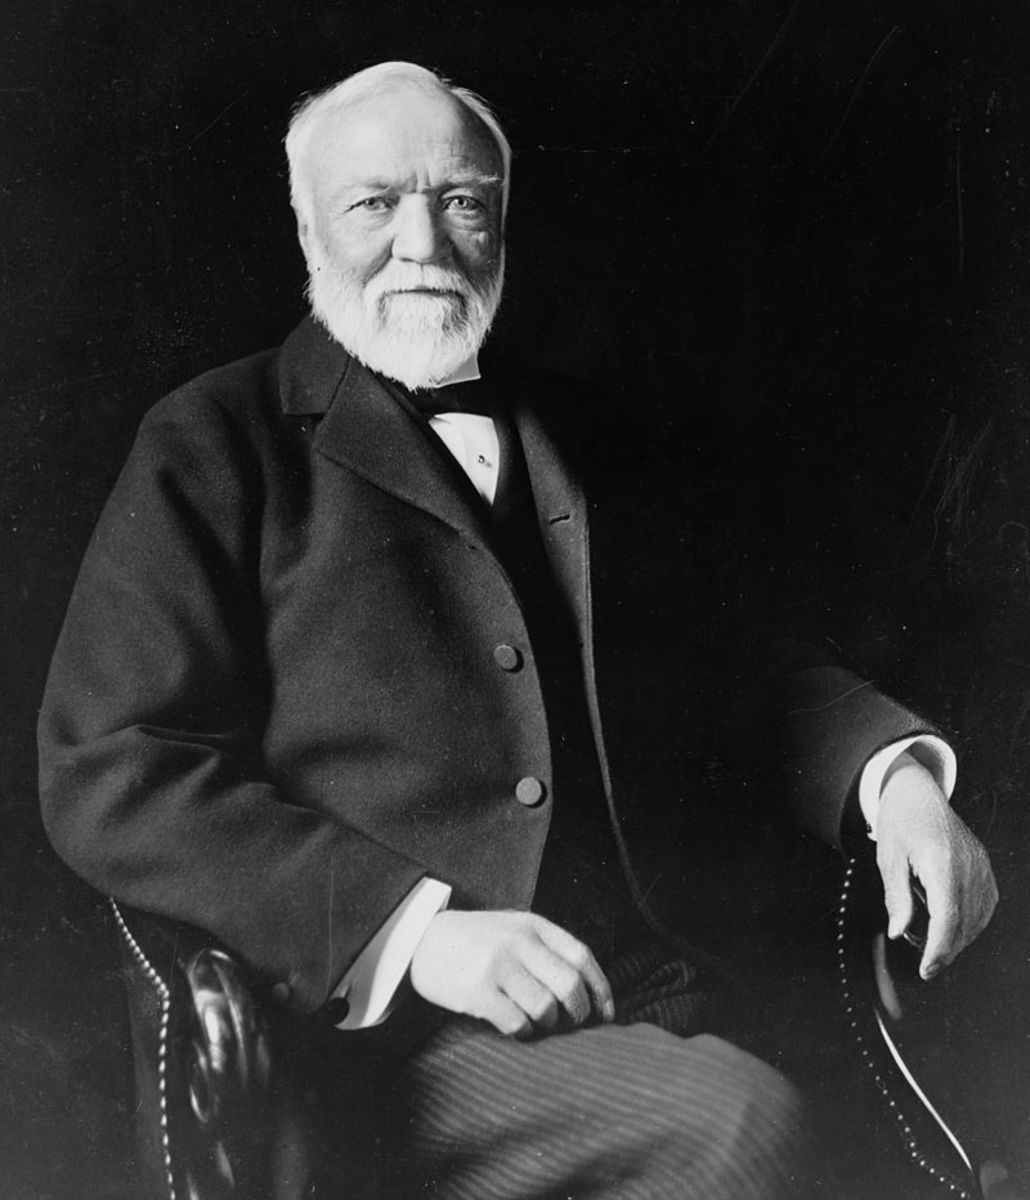 Andrew Carnegie, one of the founders of the American Industrial age, was a immigrant from Scotland.